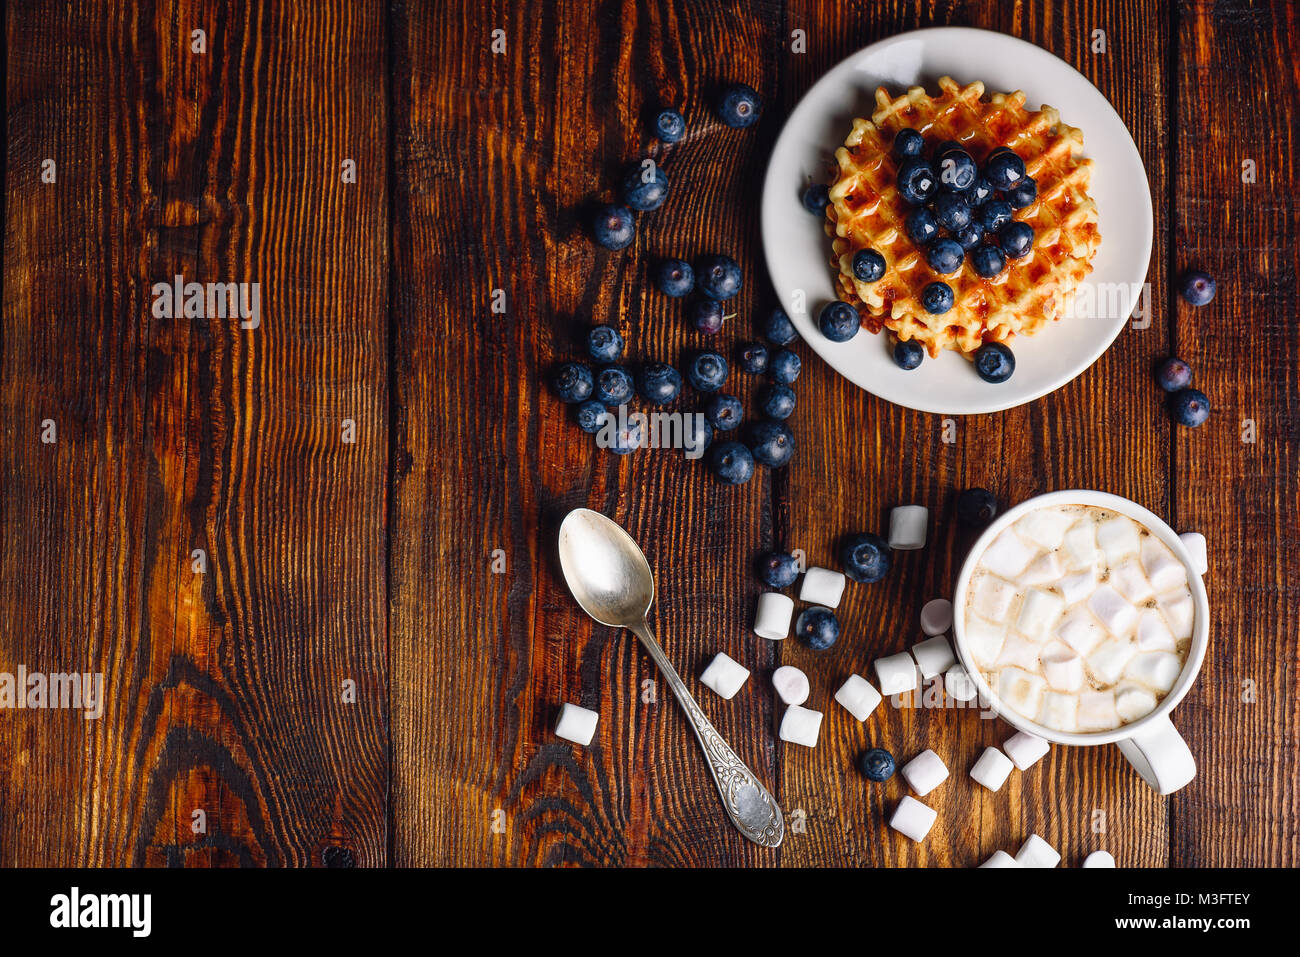 Cup of Hot Chocolate with Marshmallow and Homemade Waffles with Fresh Blueberry and Topping on Plate. Copy Space - Stock Image